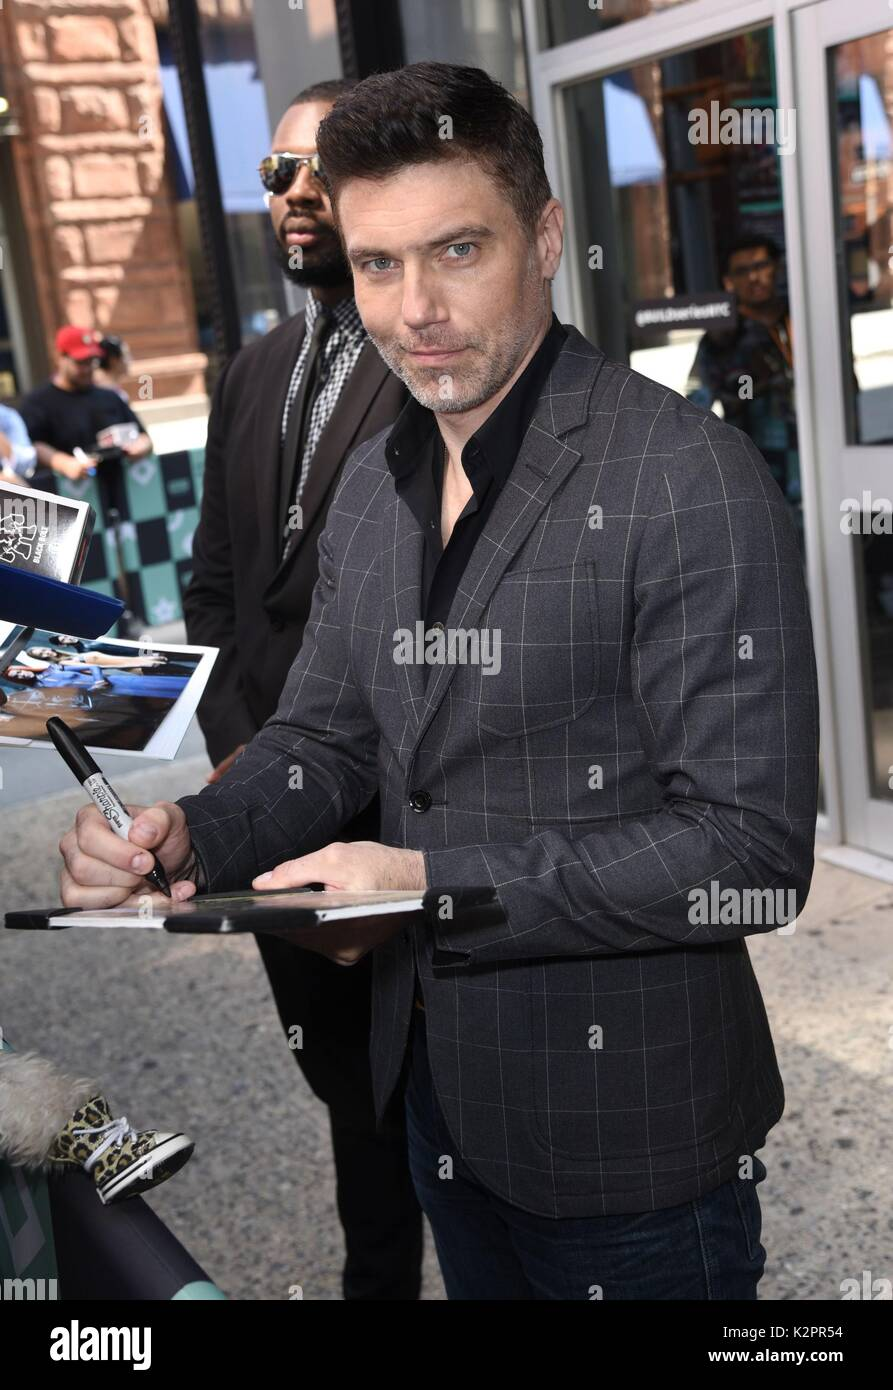 Anson Mount | Official Site for Man Crush Monday #MCM ...